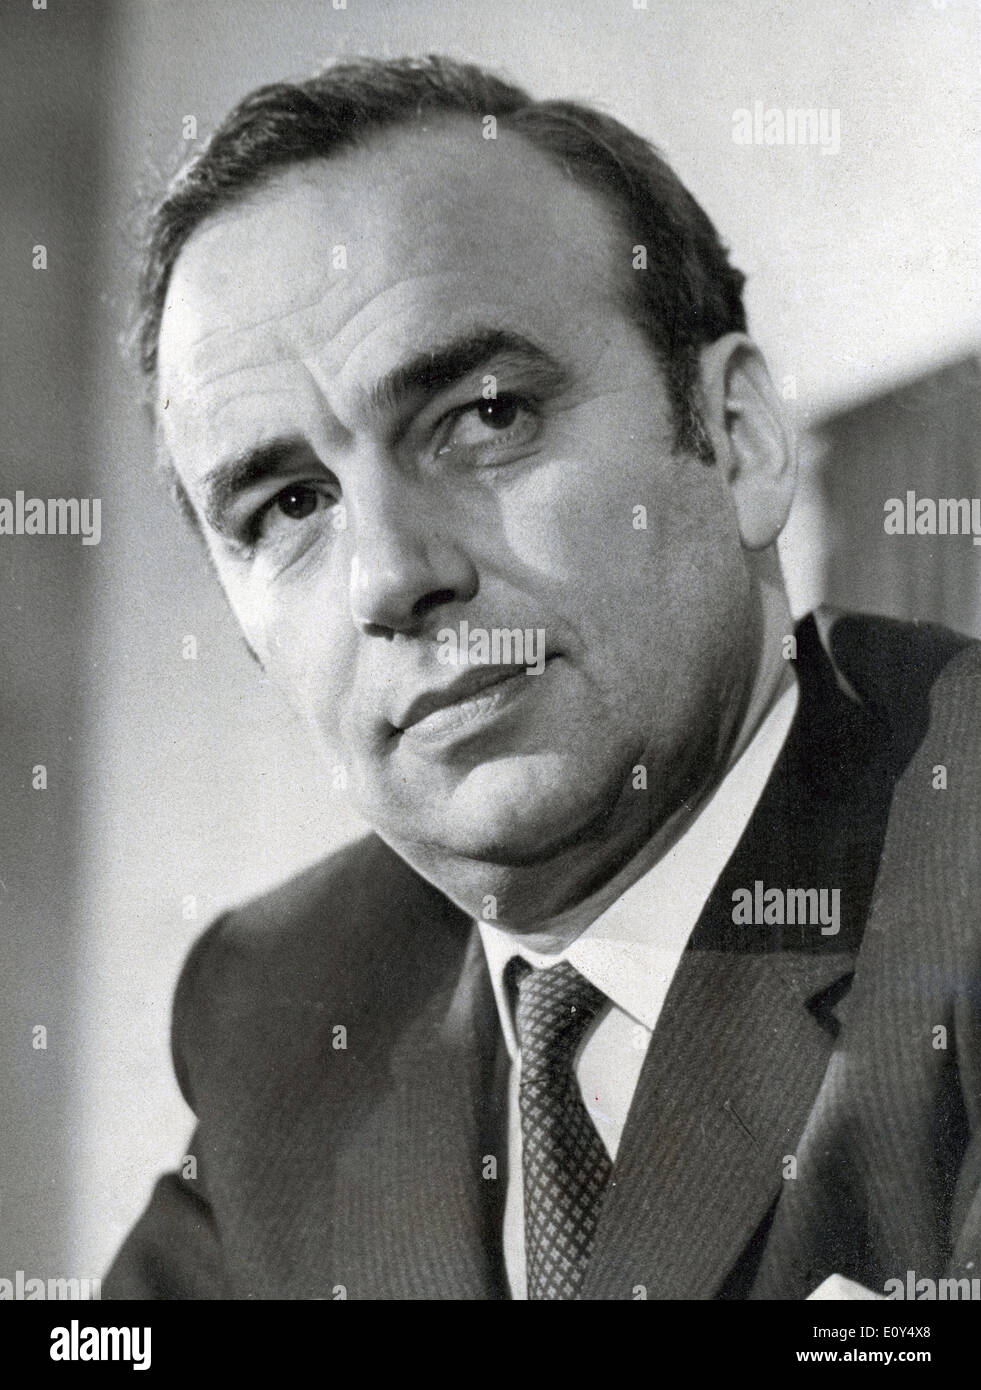 CEO of News Corporation Ruper Murdoch 1931 - Stock Image